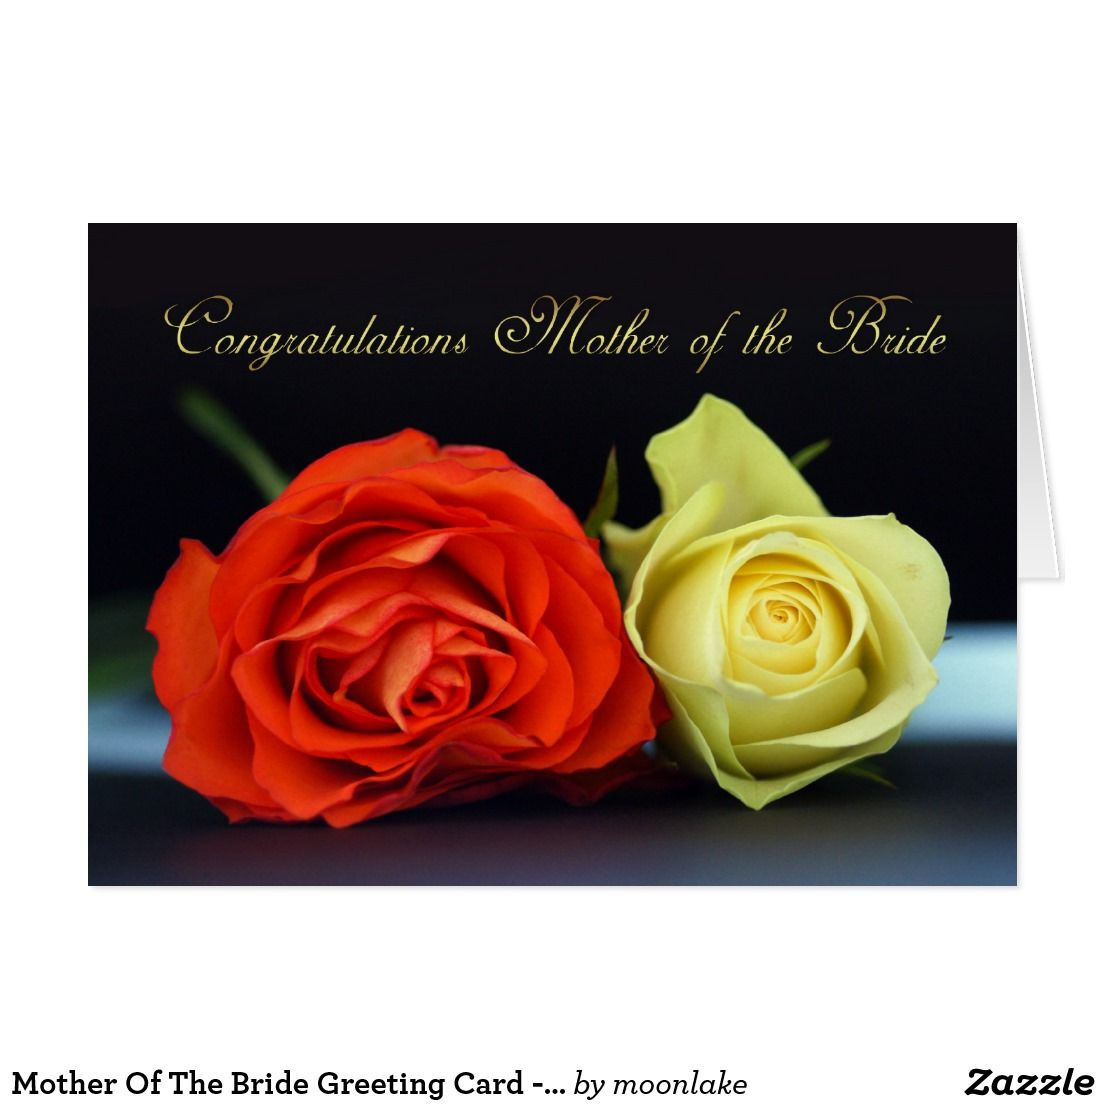 Mother of the bride greeting card congratulation wedding mother of the bride greeting card congratulation m4hsunfo